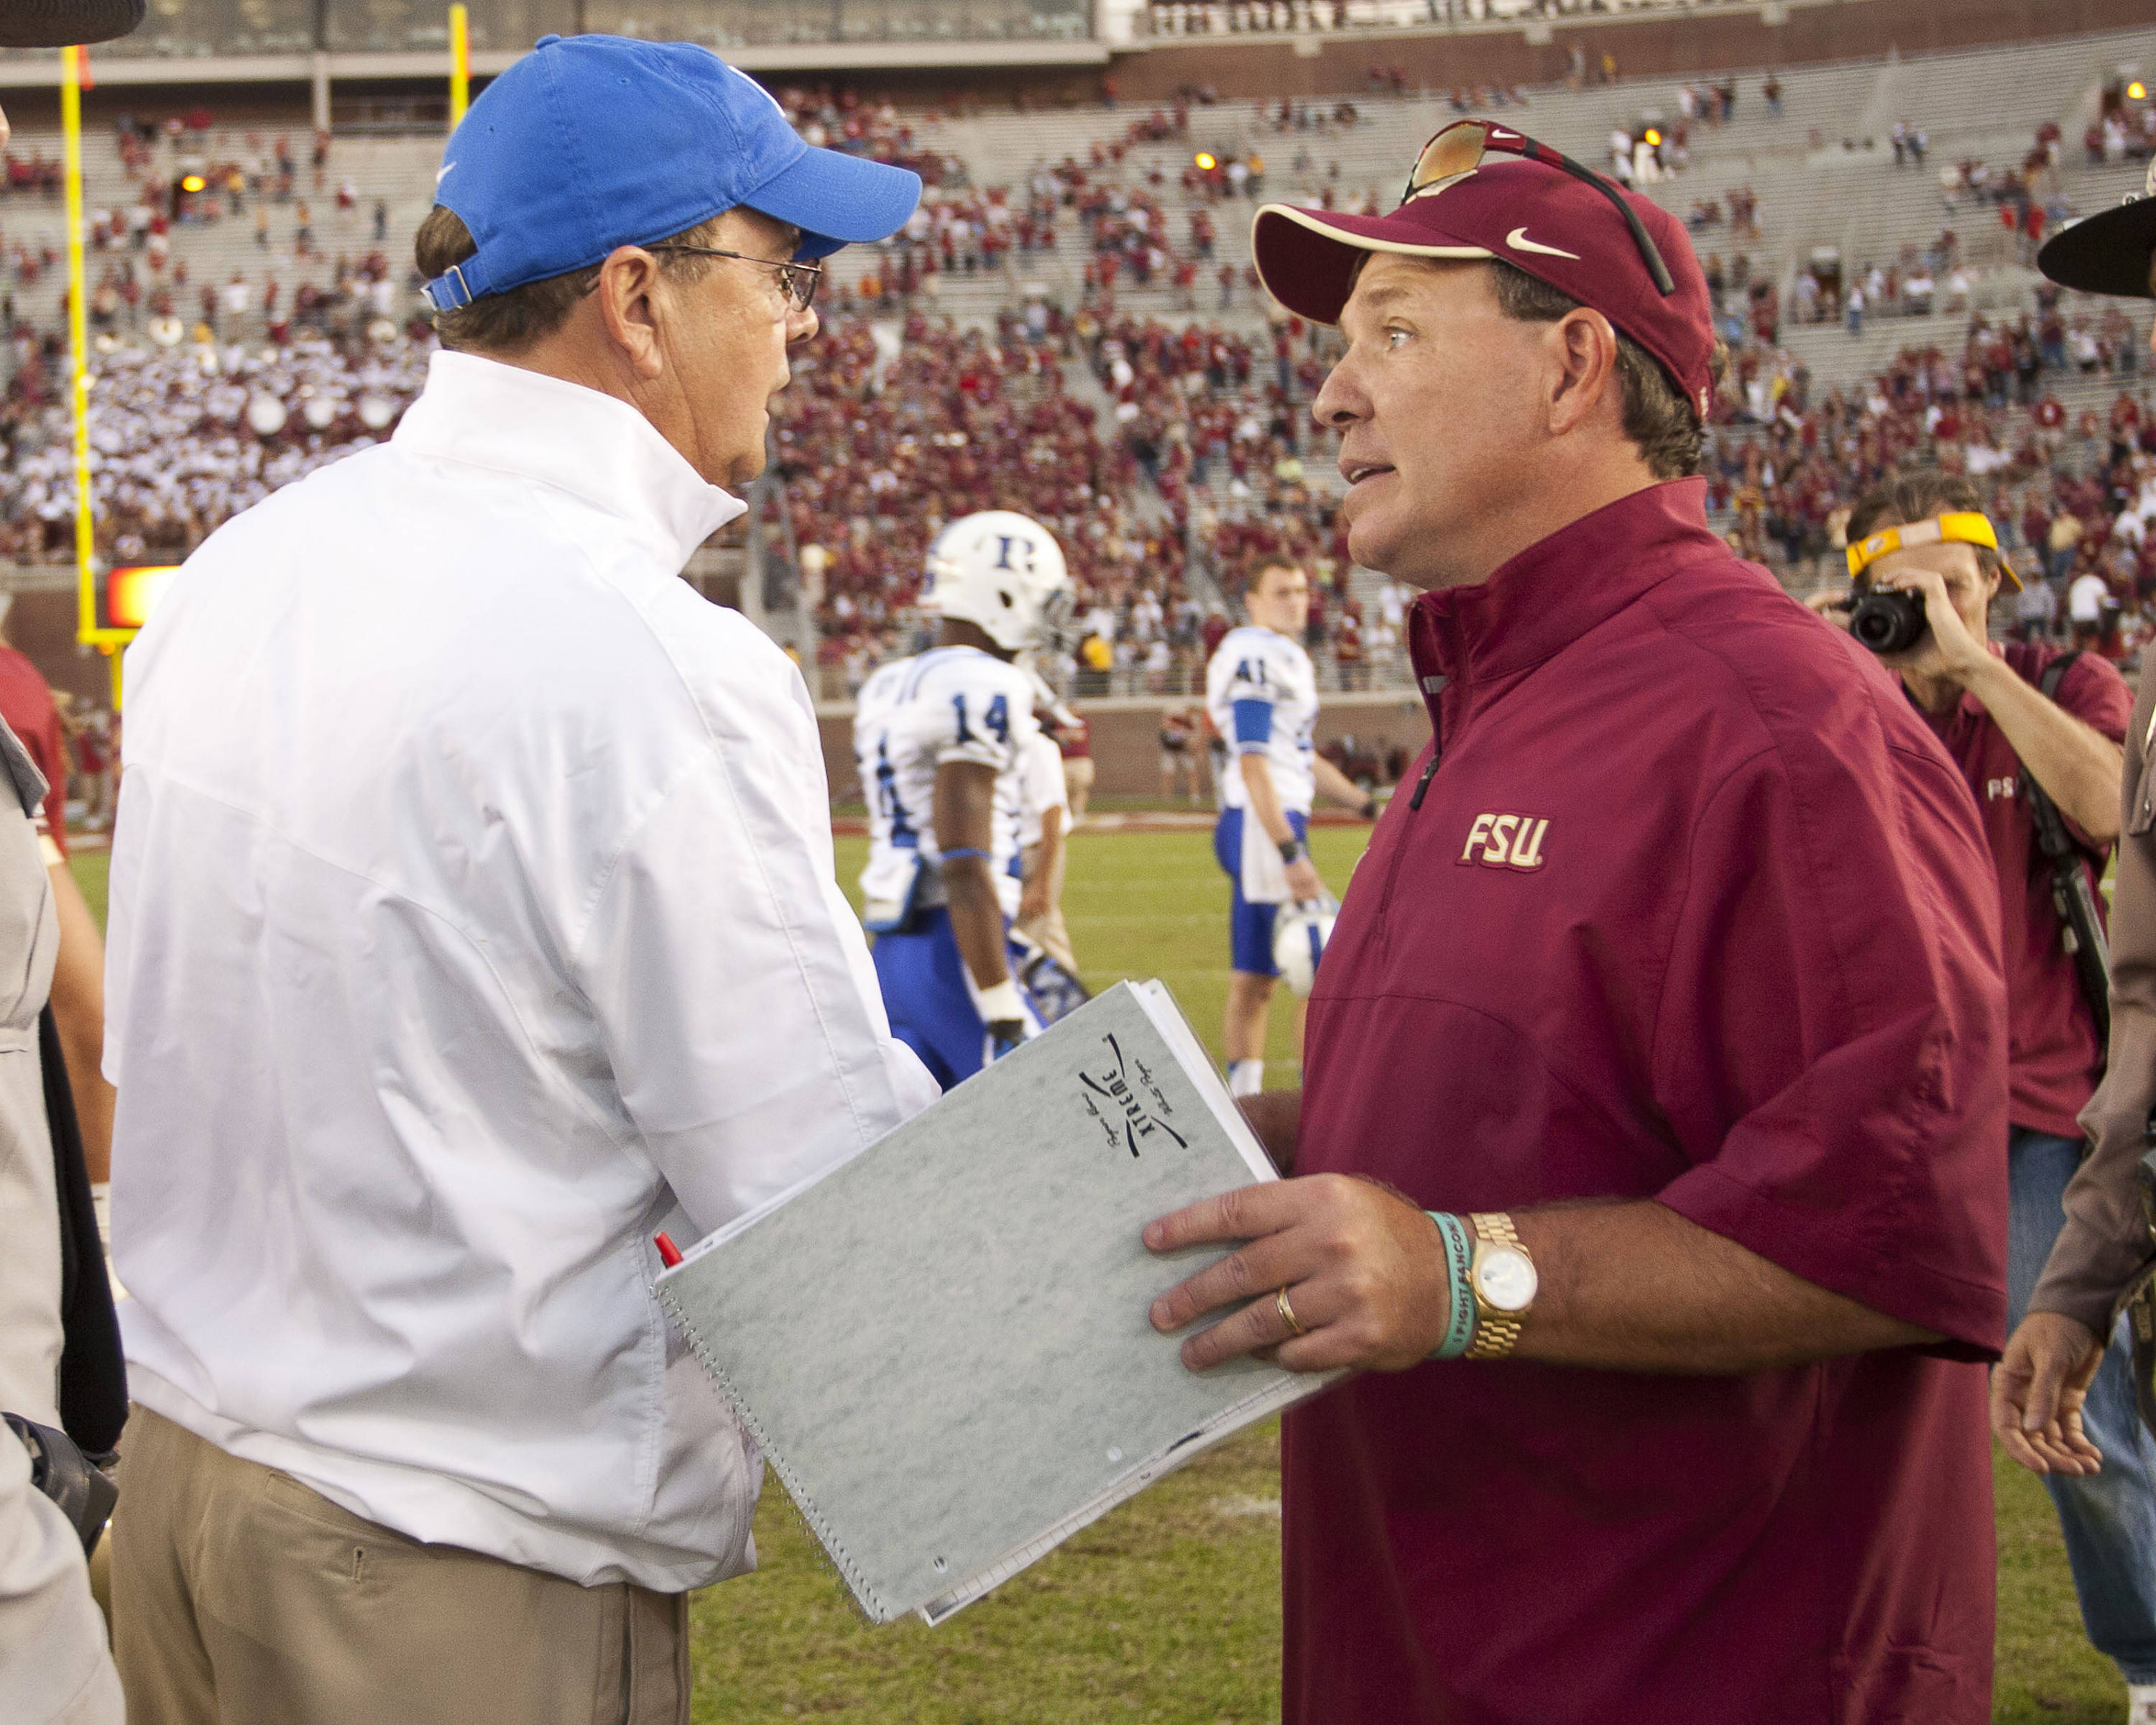 Jimbo Fisher shakes hands with Duke head coach David Cutcliffe after FSU's 48-7 victory over Duke on October 27, 2012 in Tallahassee, Fla.